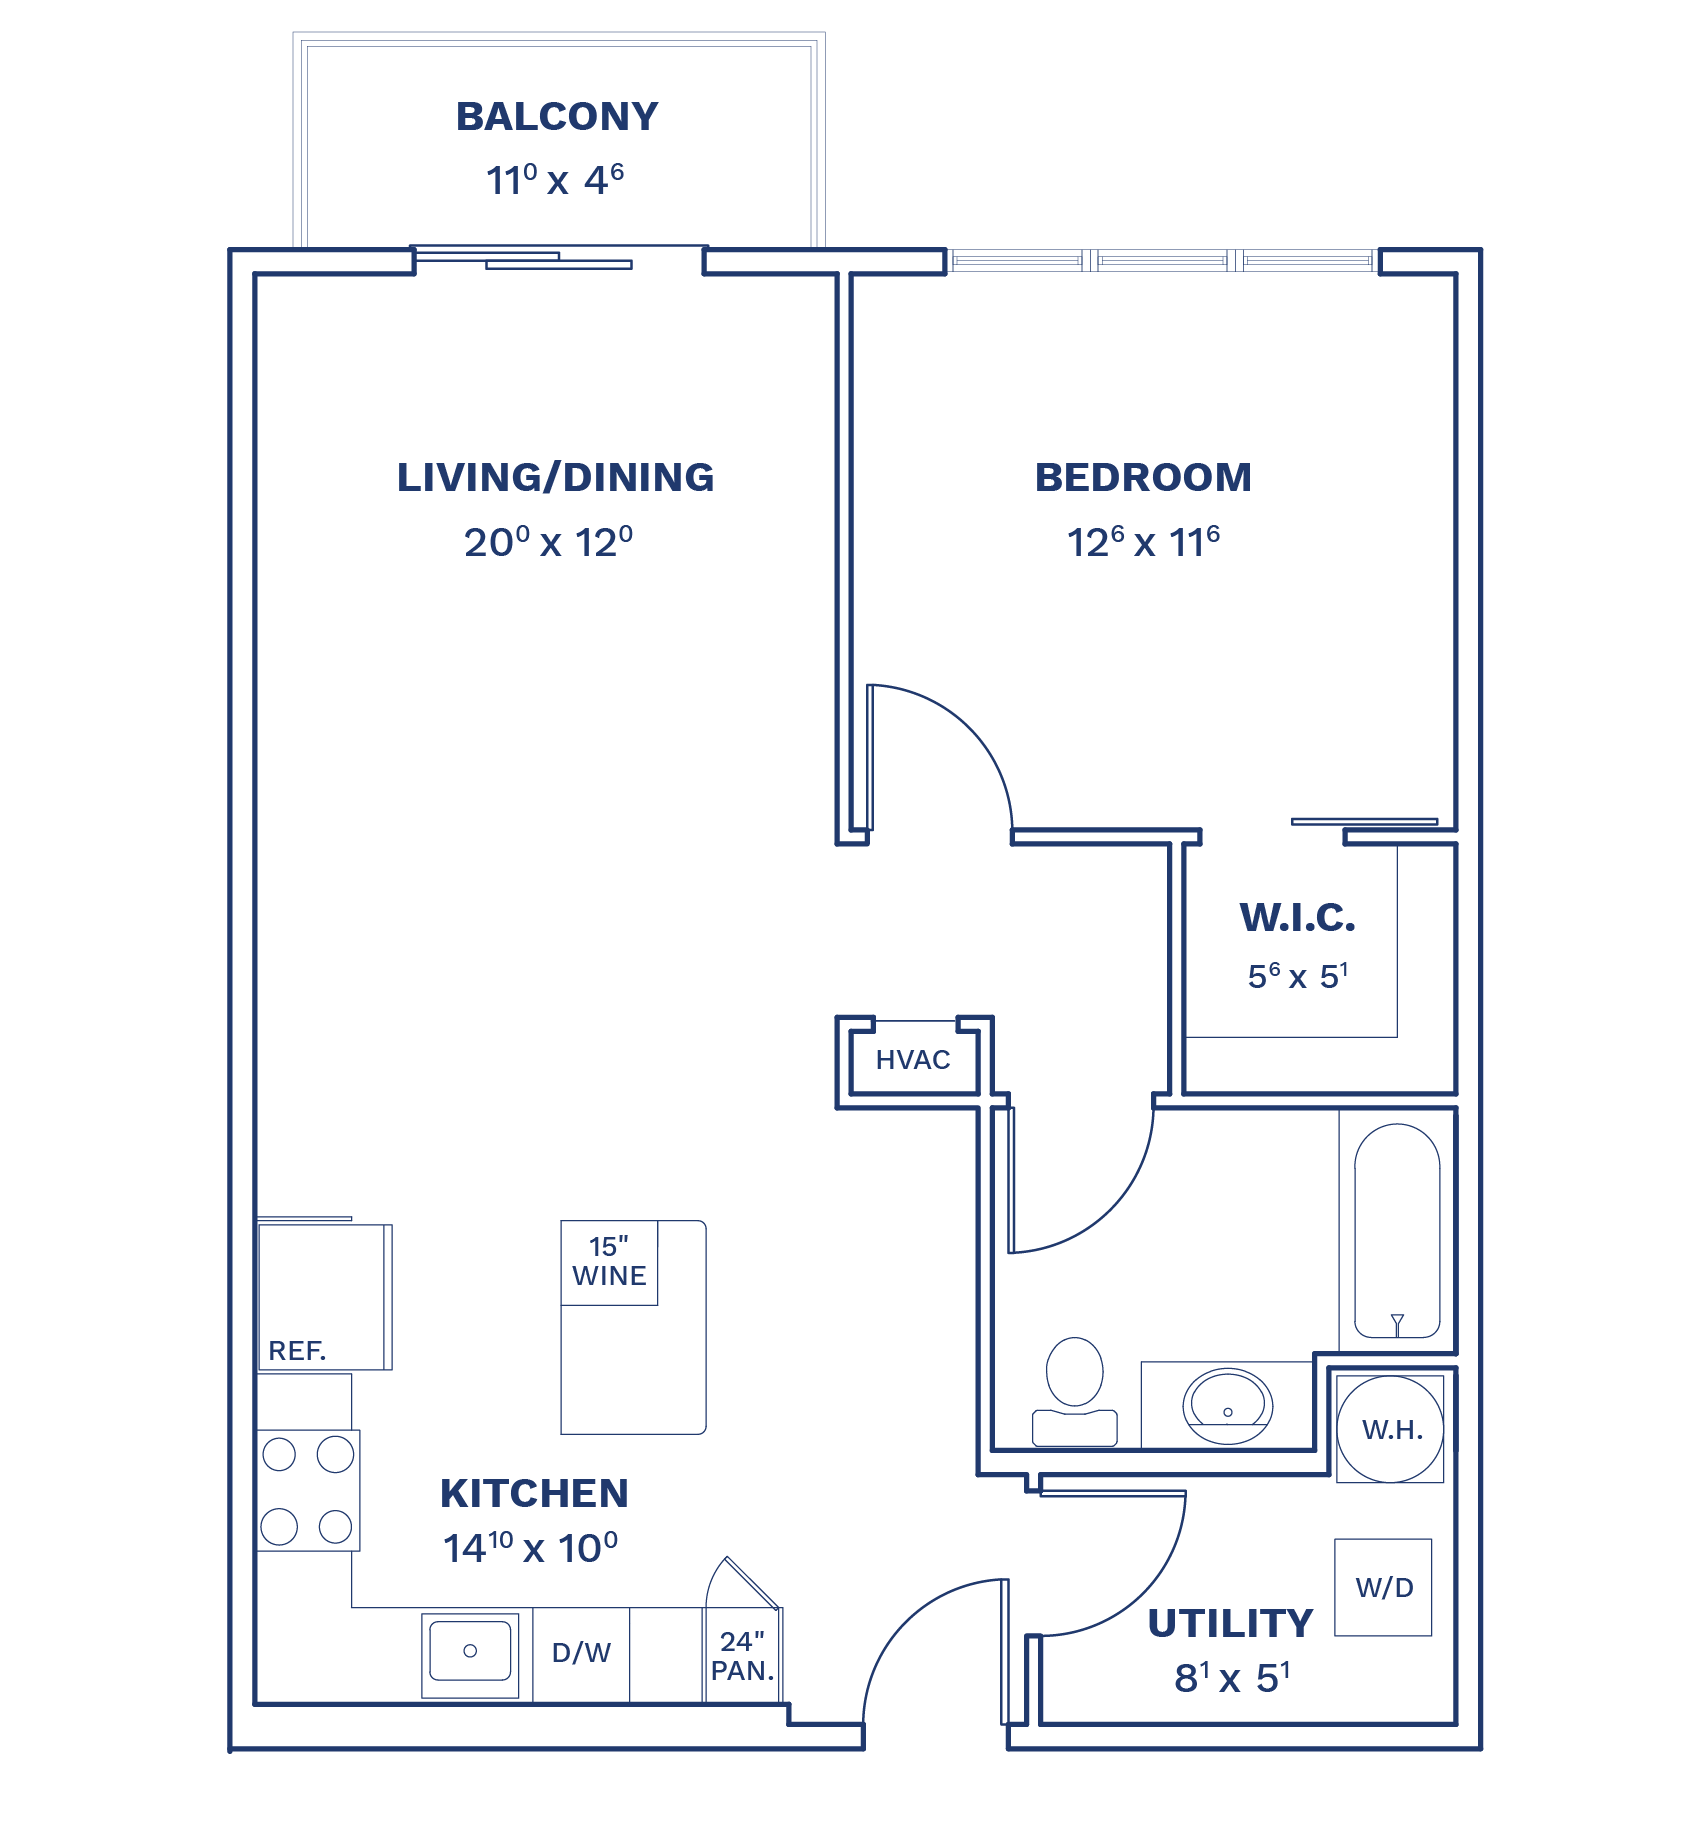 Floorplan of Unit A2